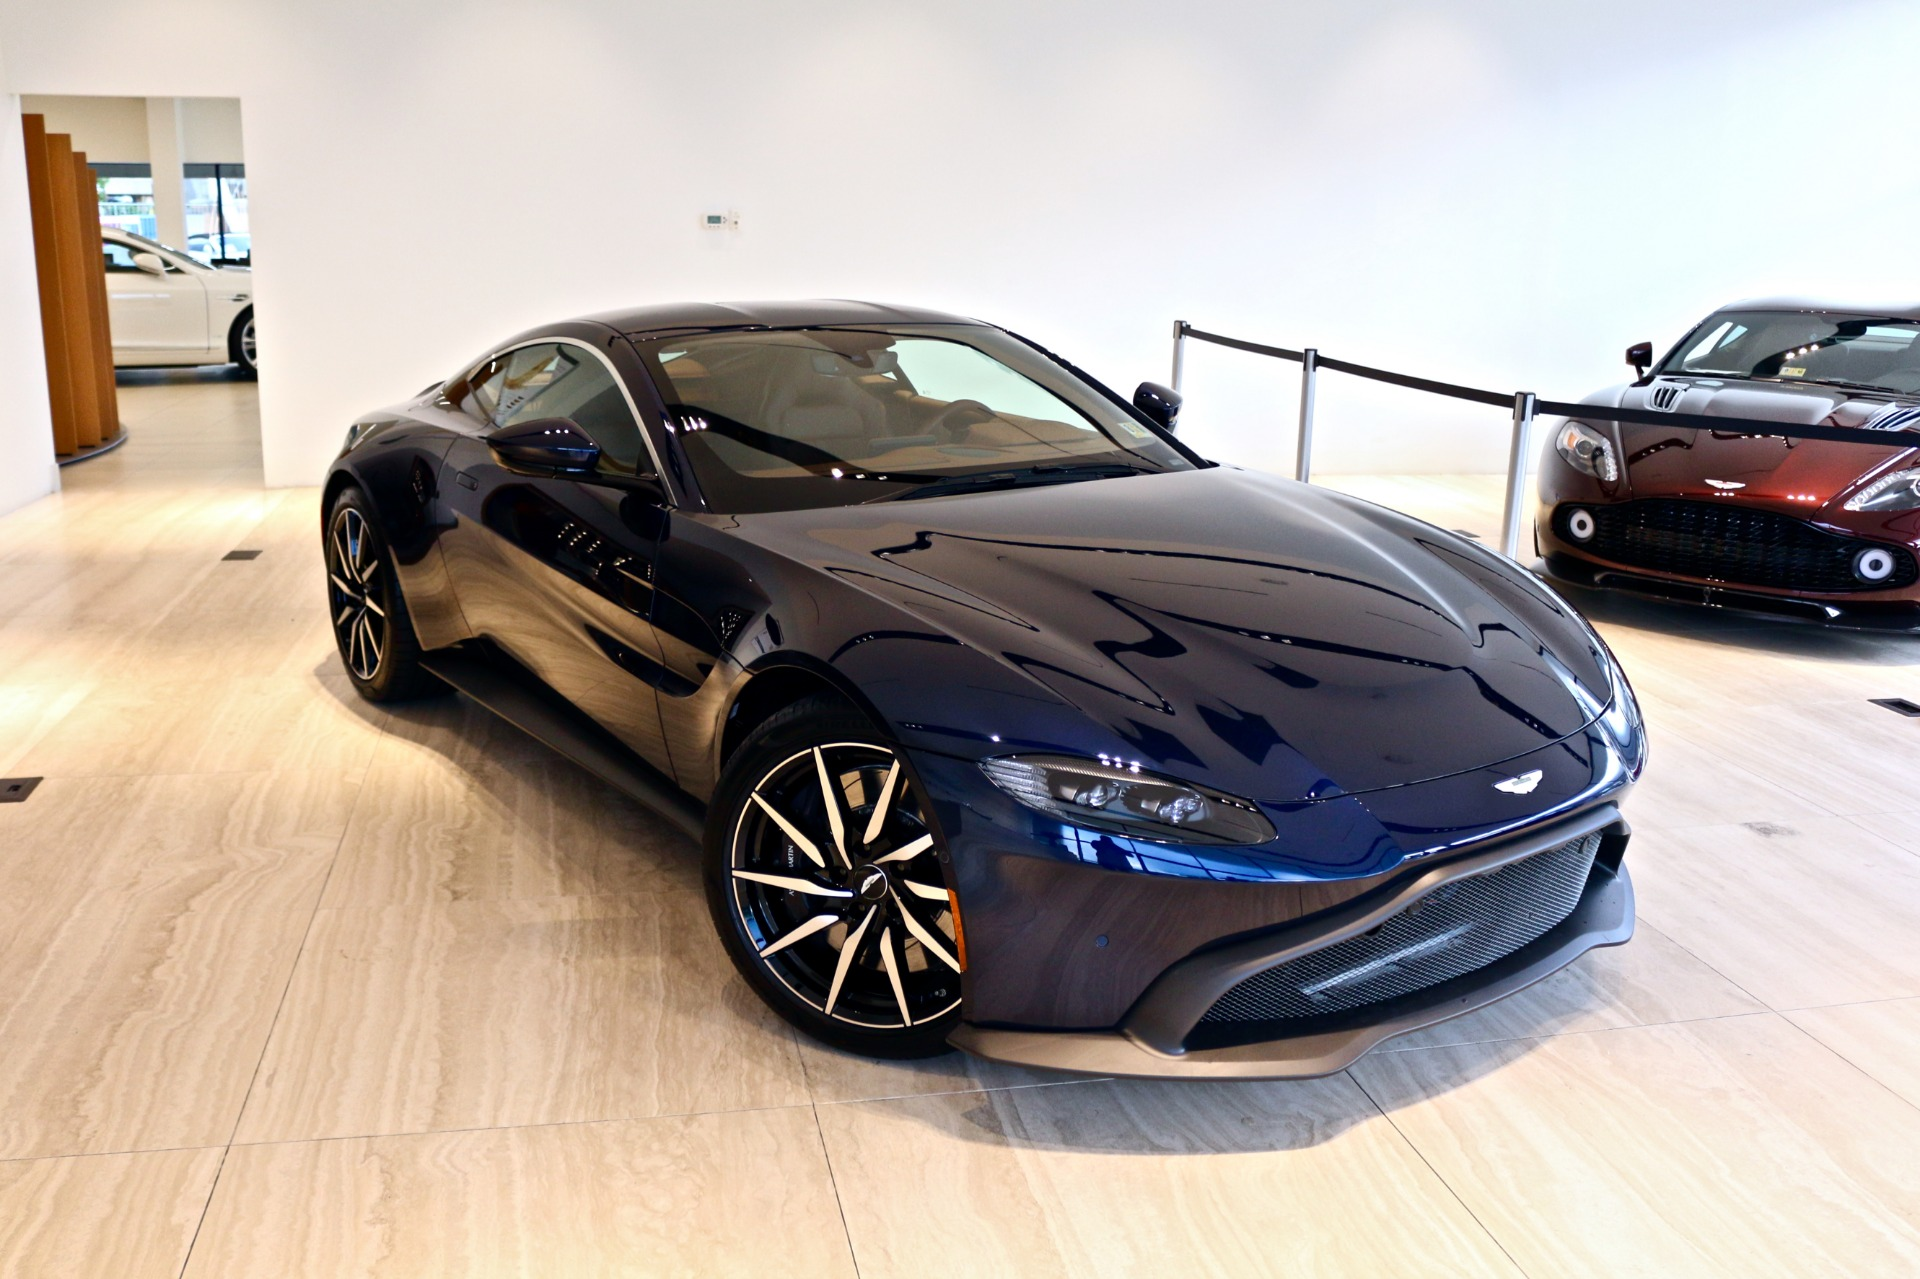 2019 Aston Martin Vantage Stock 9nn00297 For Sale Near Vienna Va